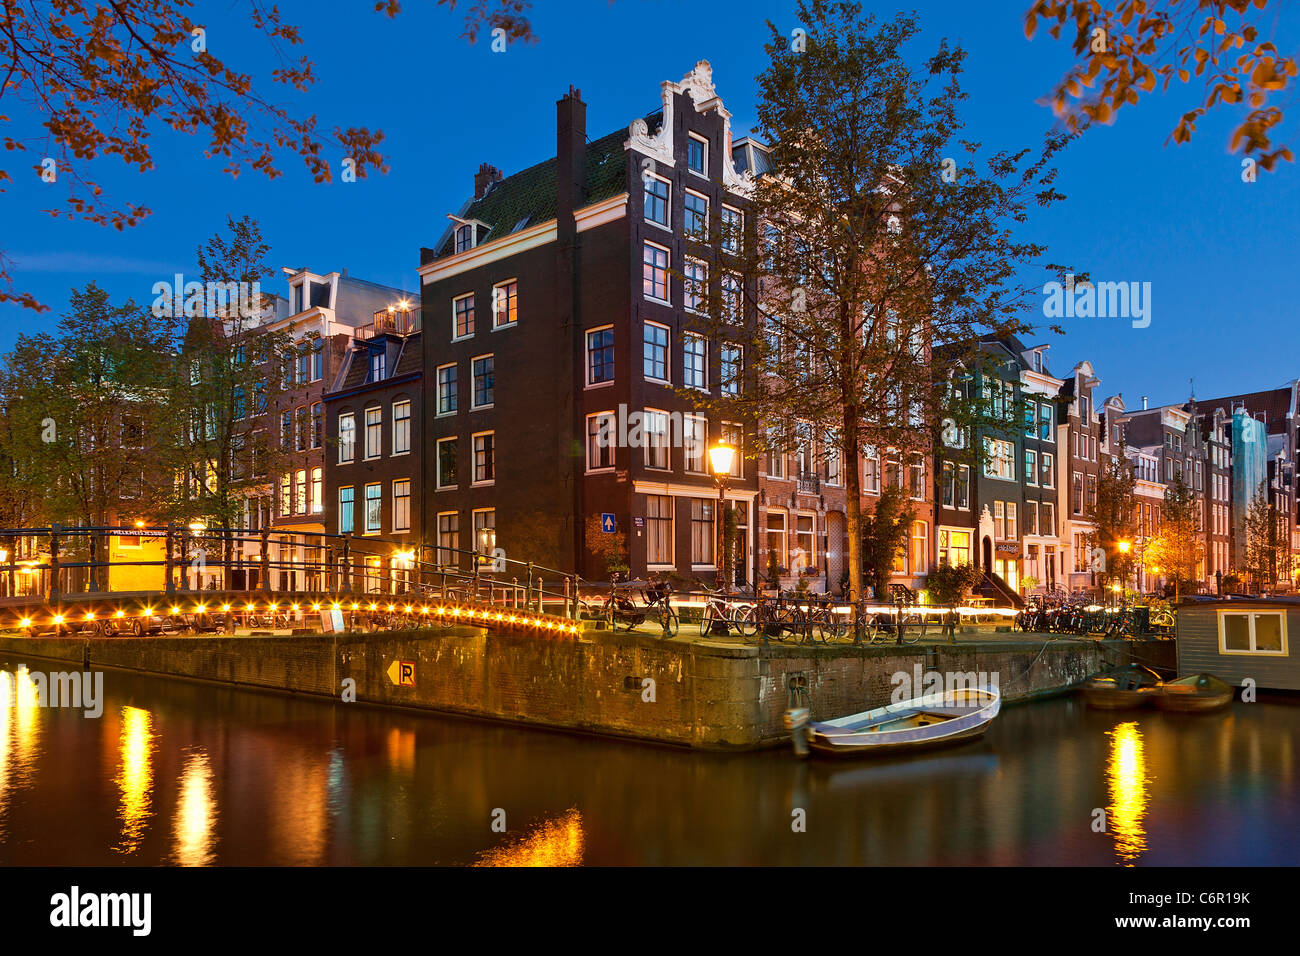 Europe, Netherlands, Amsterdam, Canal at Dusk - Stock Image